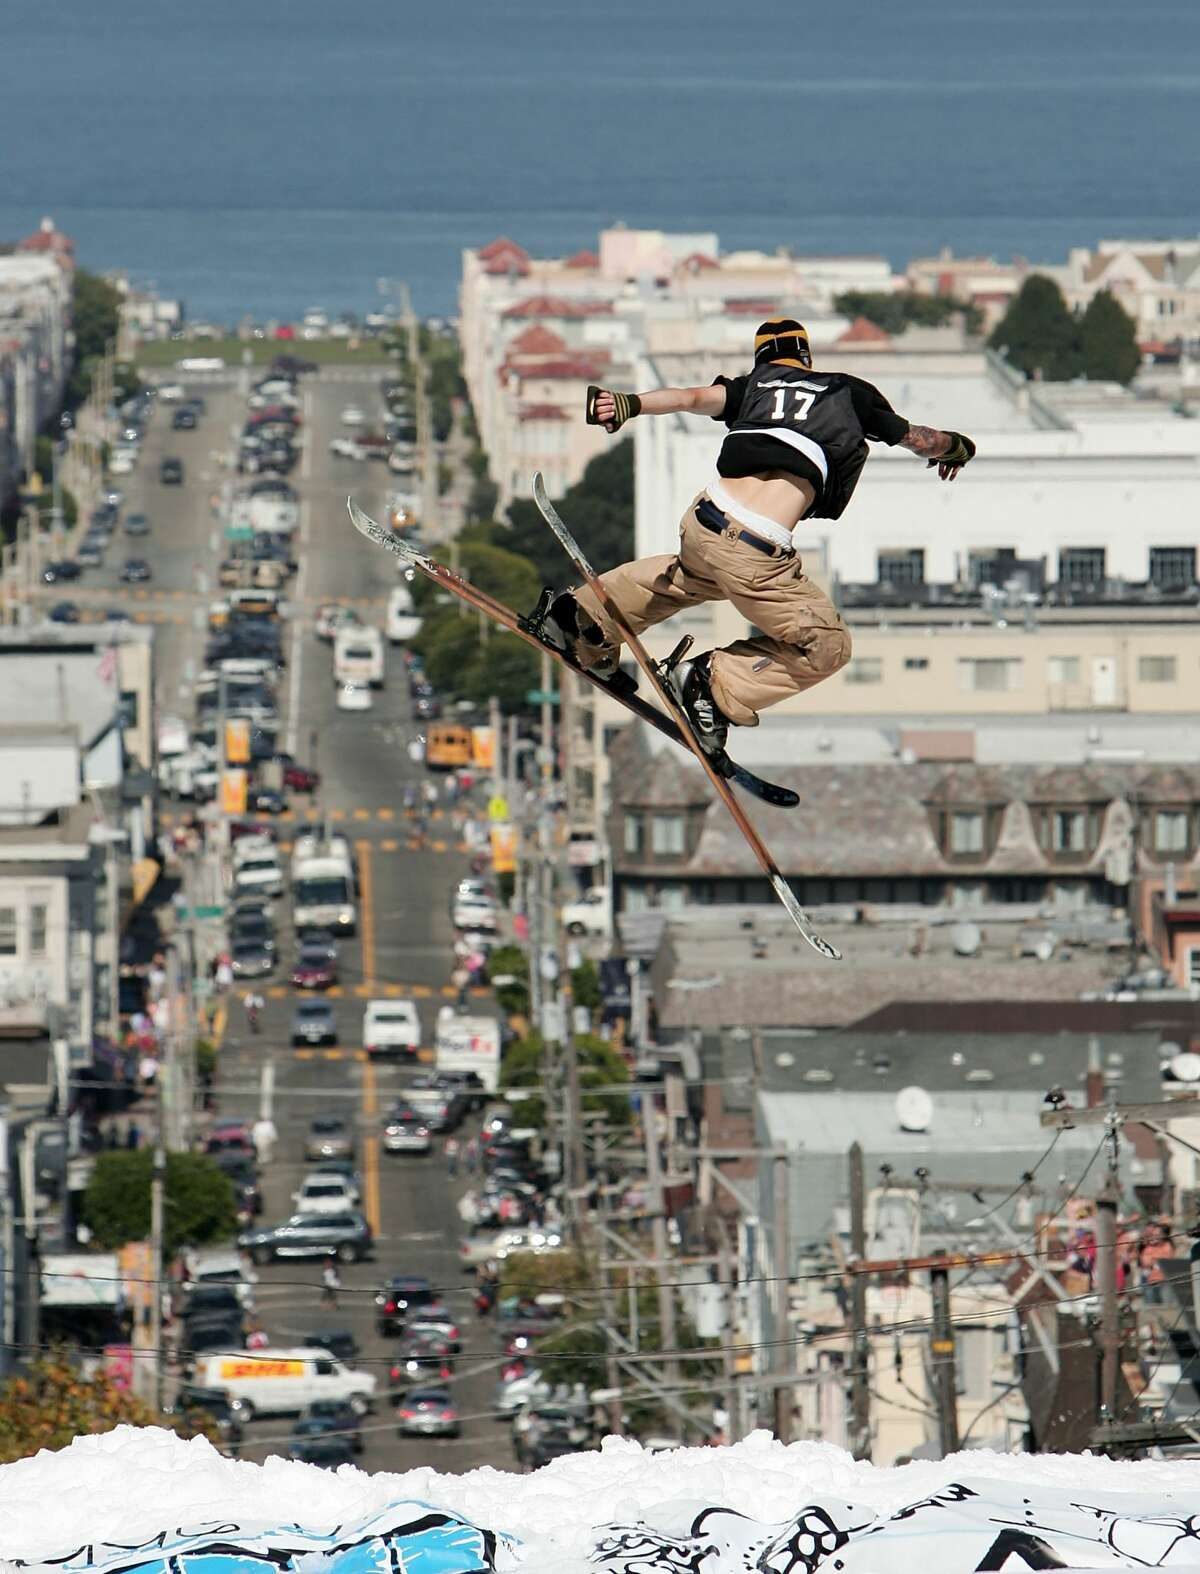 Andy Mahre #17 launches off the jump during a promotional ski jump put on by Icer Air on Filmore Street on September 29th, 2005 in San Francisco, California.